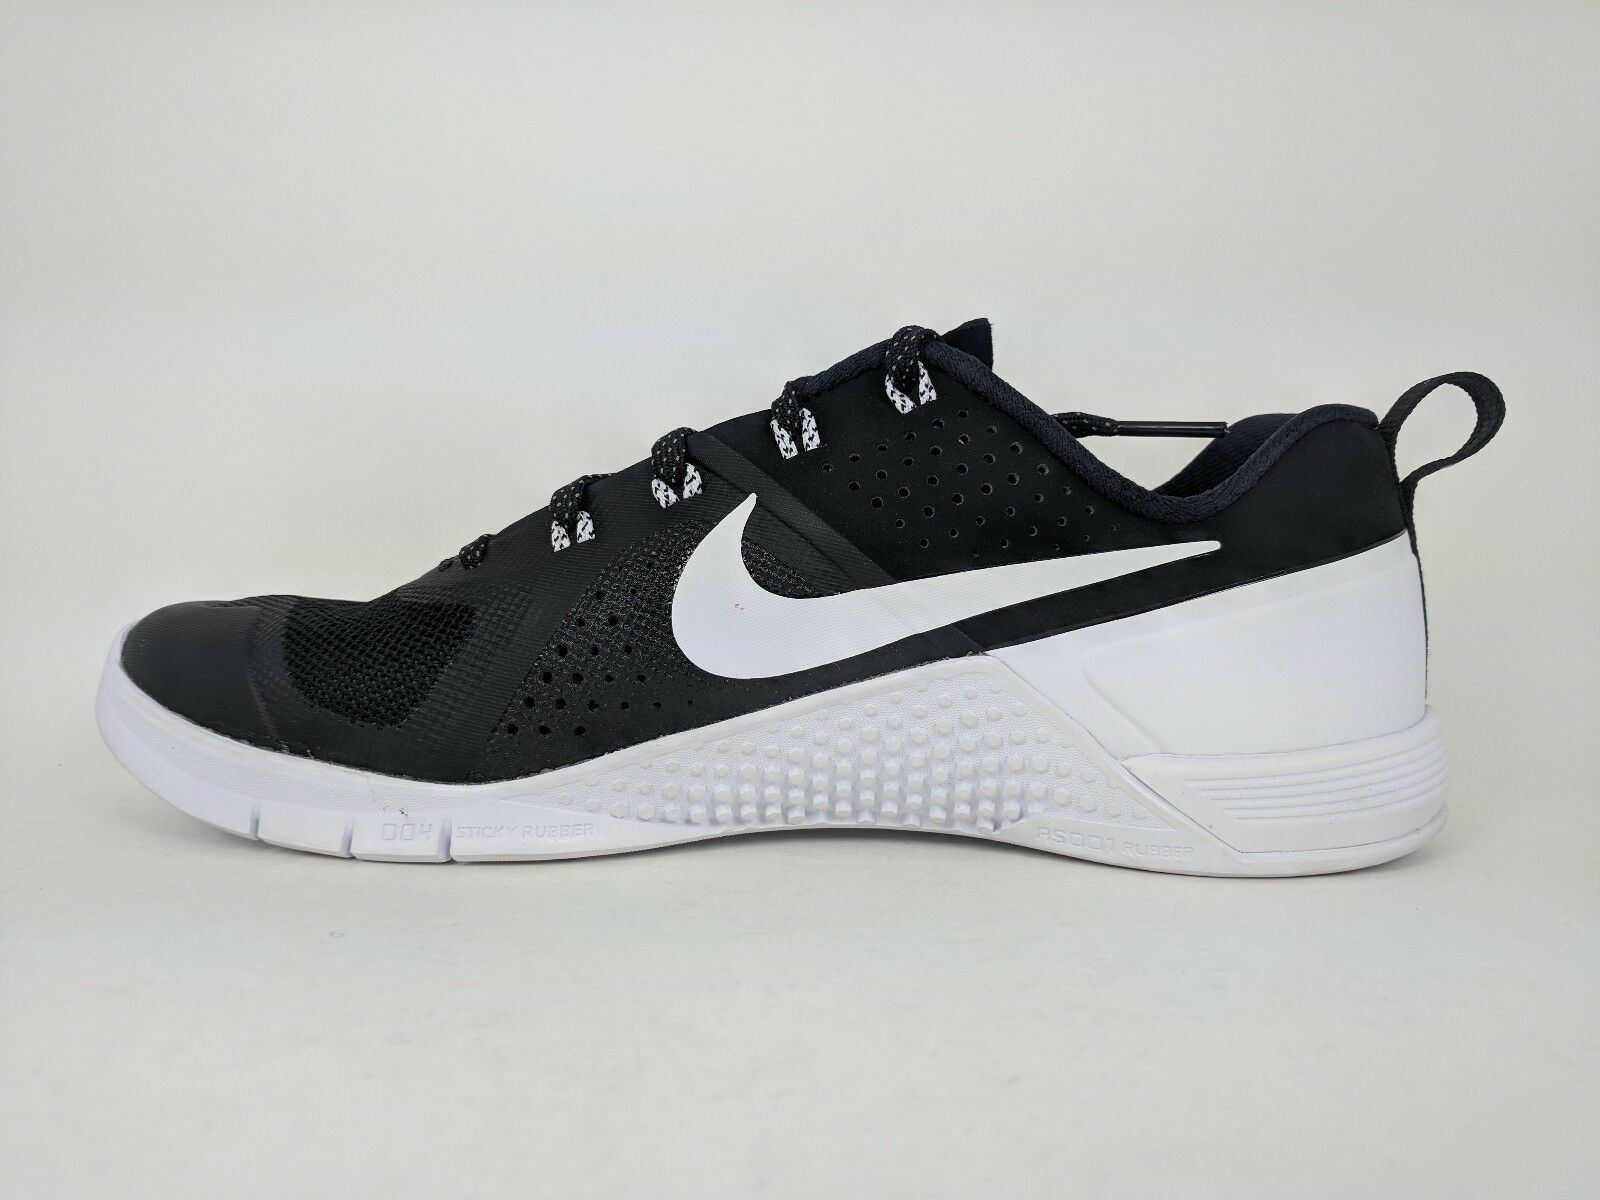 check out e6def 3b95a ... Nike Men s Metcon 1 AMP PX Training Crossfit Shoes Shoes Shoes Black  White Sz 7 ...